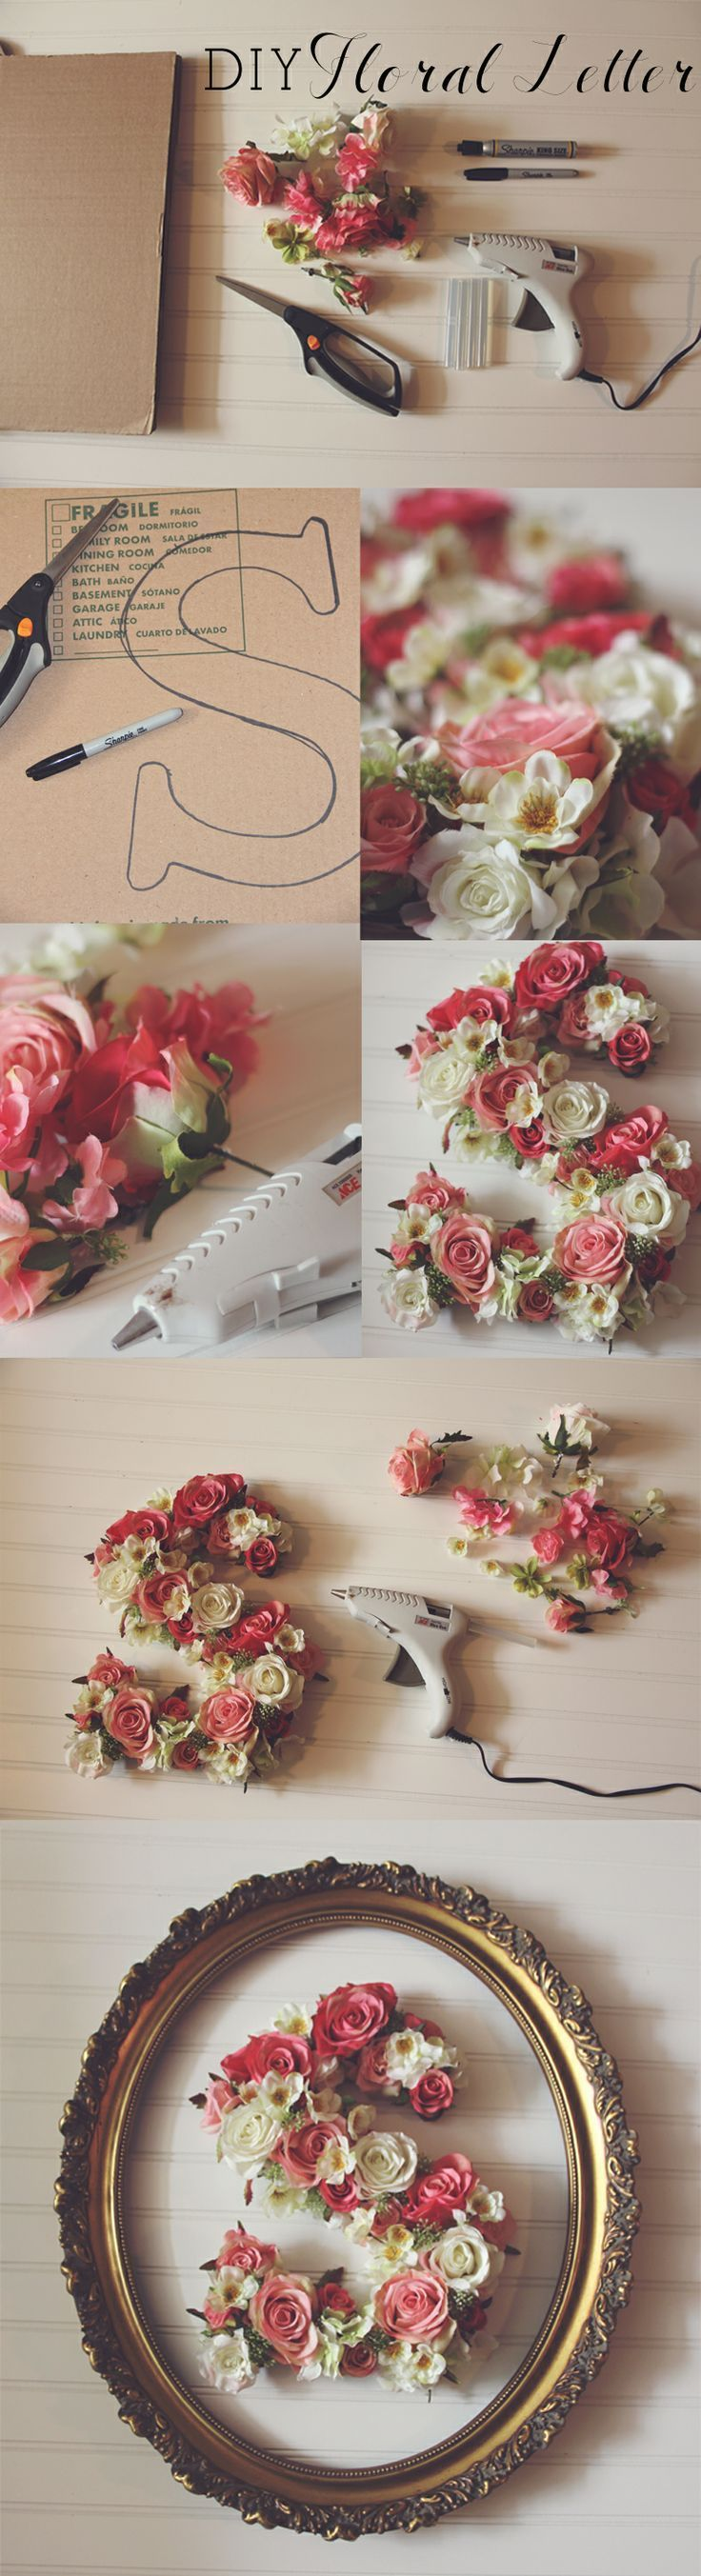 gorgeous DIY floral letter with frame